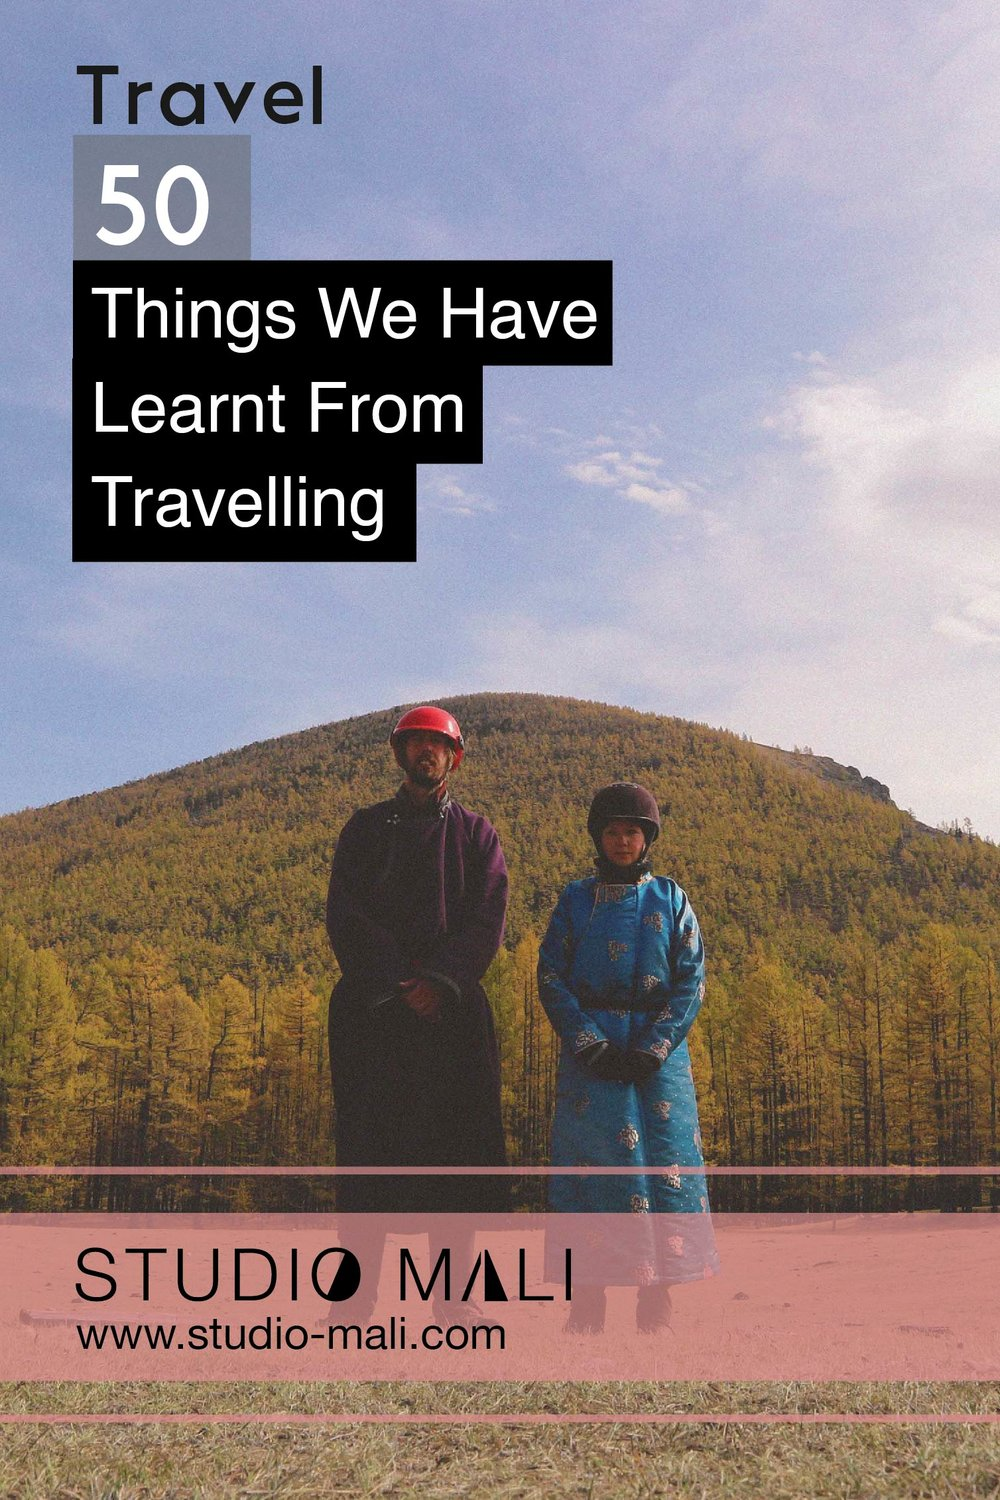 50 Things We Have Learnt From Travelling, By Studio Mali.jpg